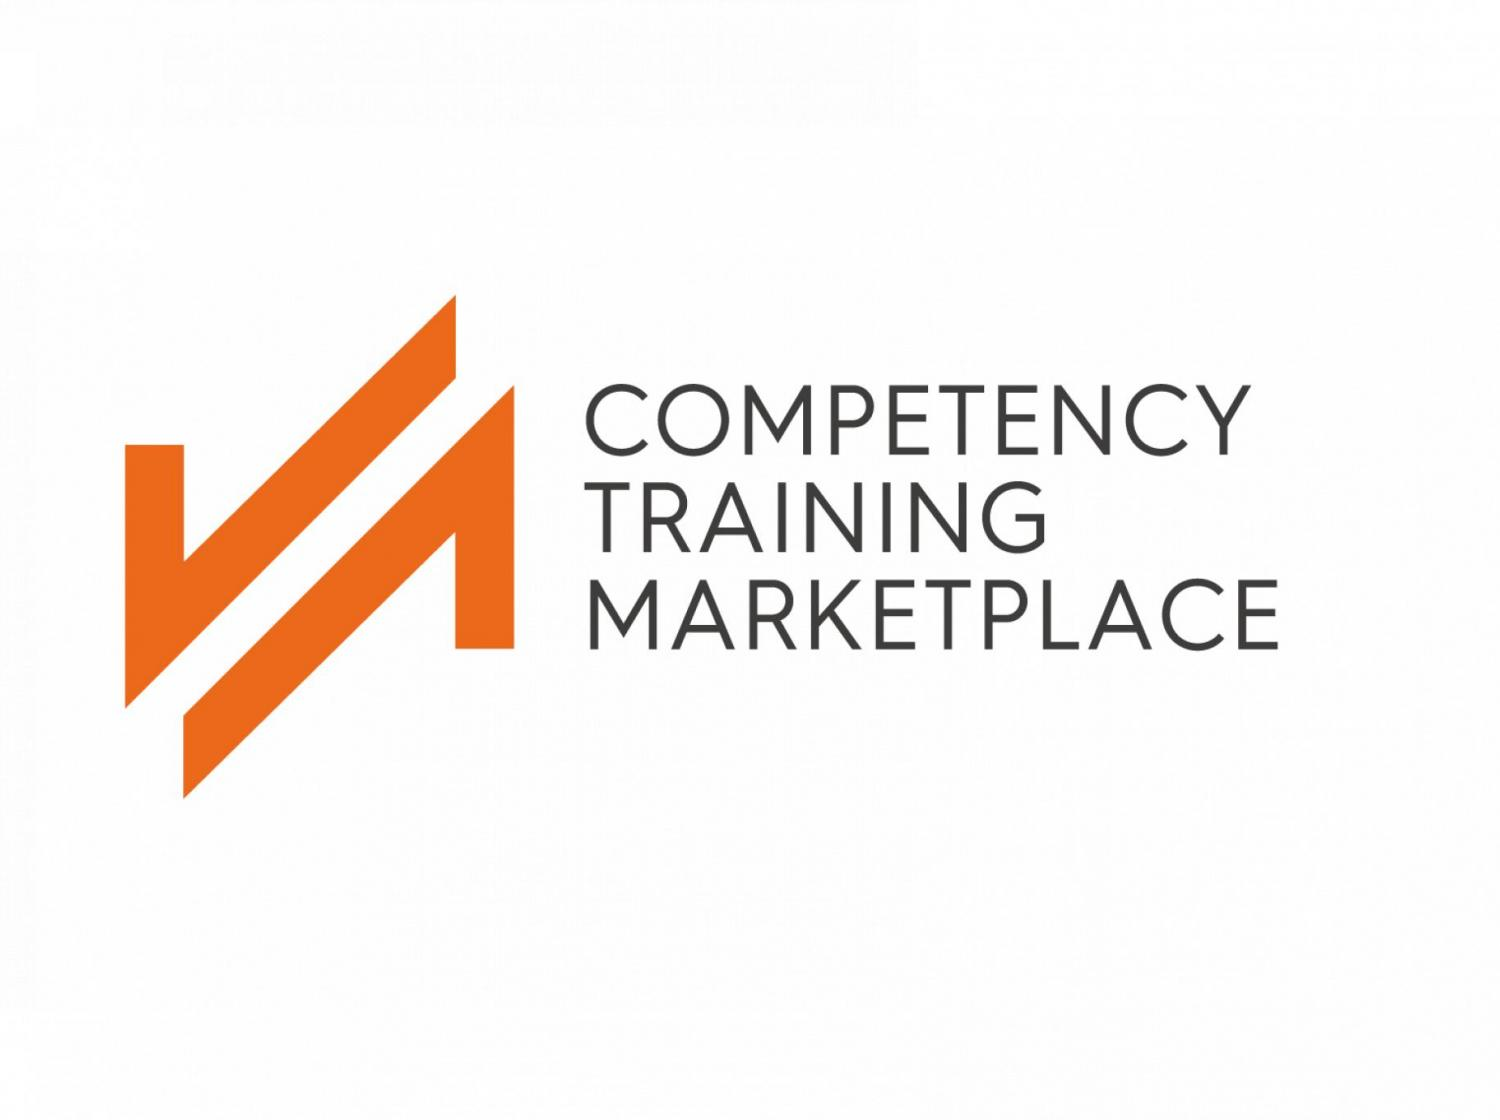 Competency Training Marketplace